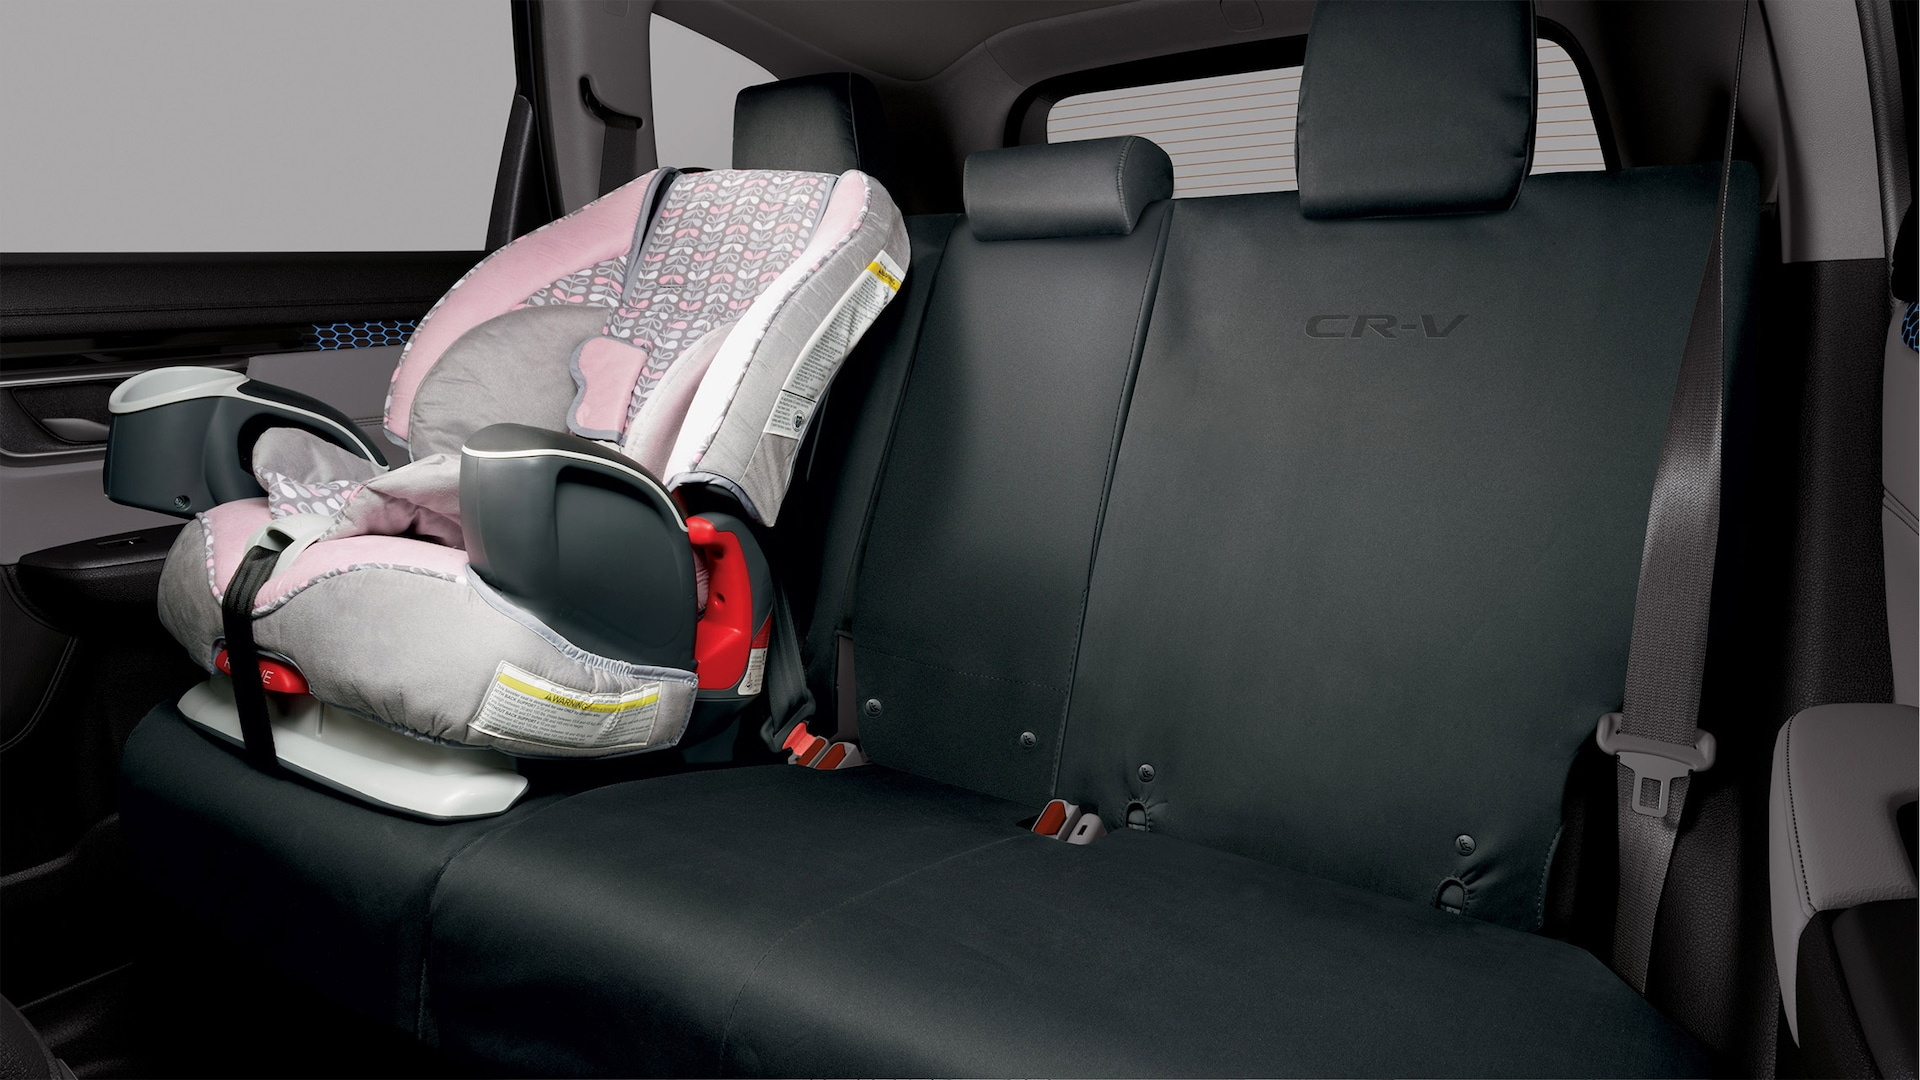 Interior view of 2020 Honda CR-V with Honda Genuine Accessory rear seat covers.